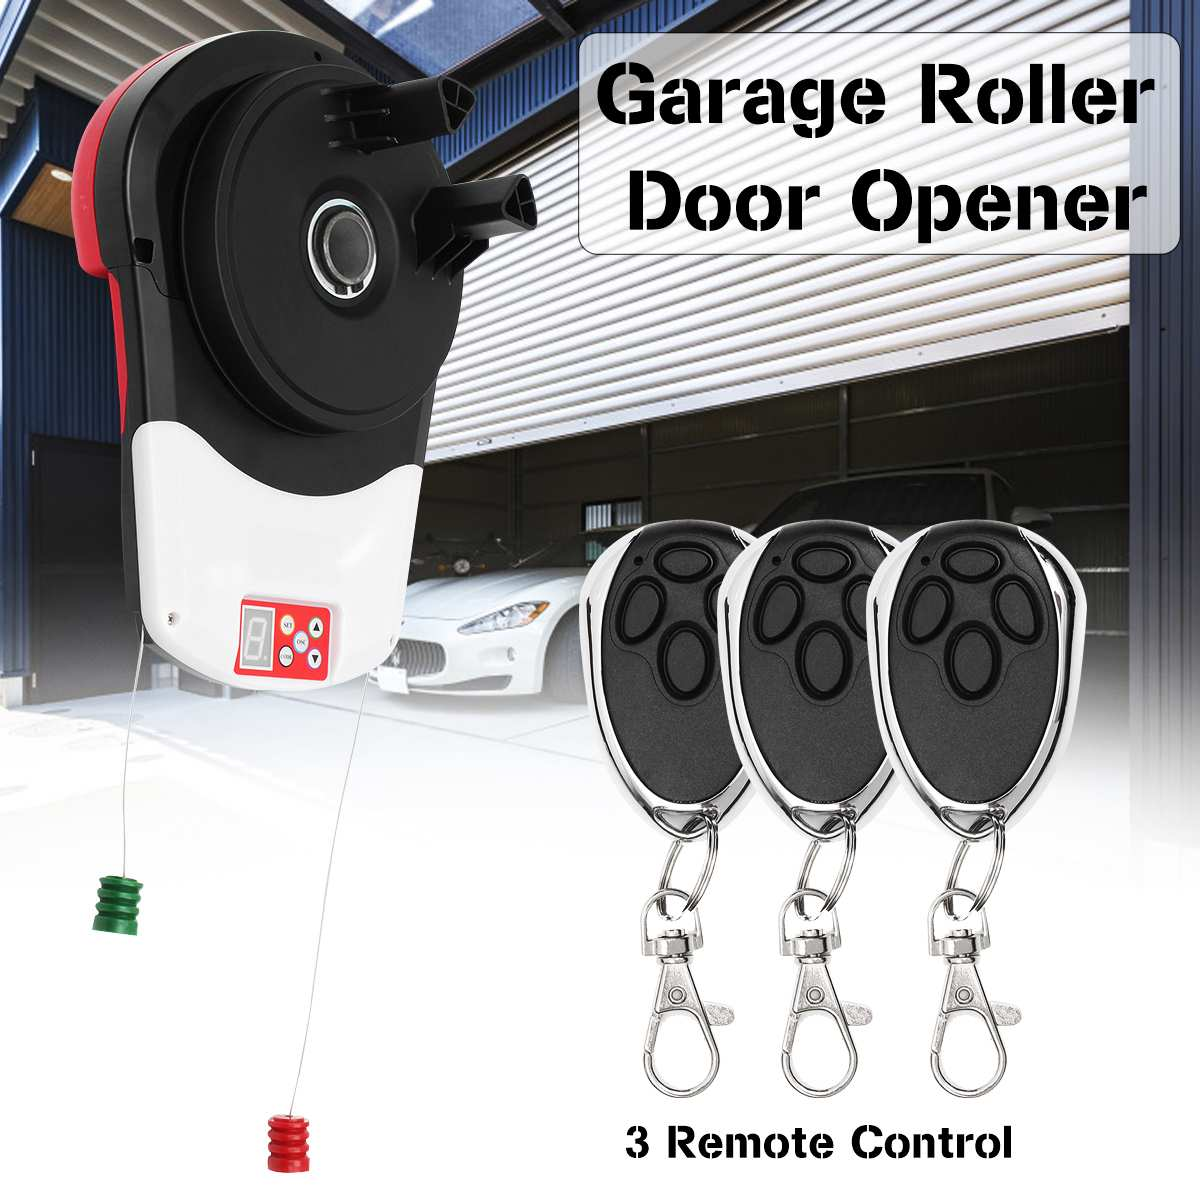 110V 600N Garage Roller Door Auto Opener Motor With 3 Remote Control Electric Operator For Rolling Gate Automatic Door Operators